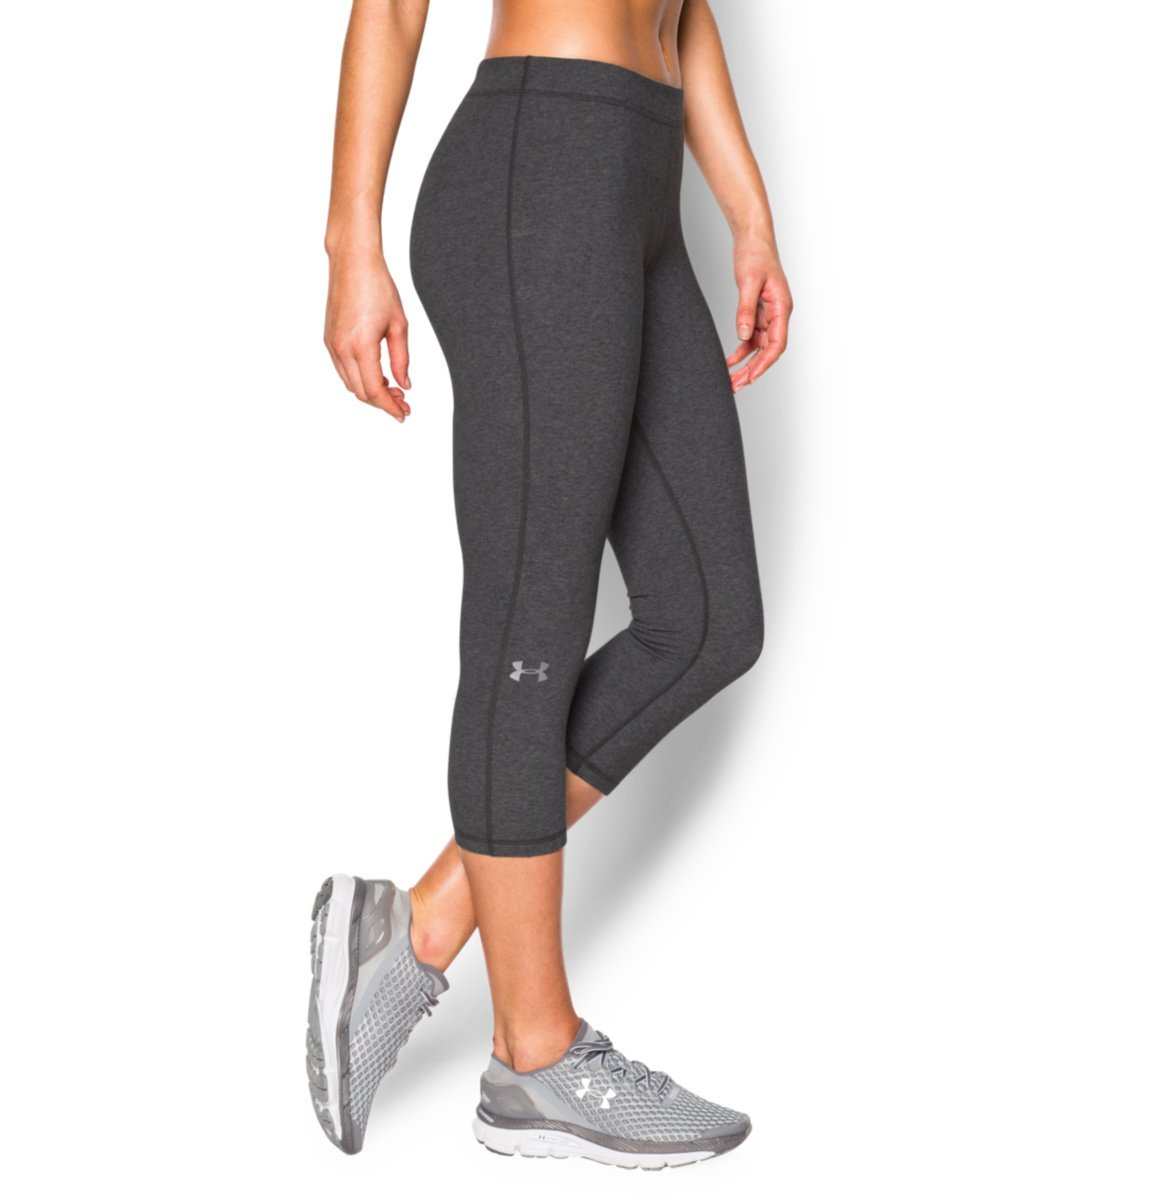 Under Armour Women's Favorite Capris - Solid Carbon Heather/Metallic Silver Pants by Under Armour